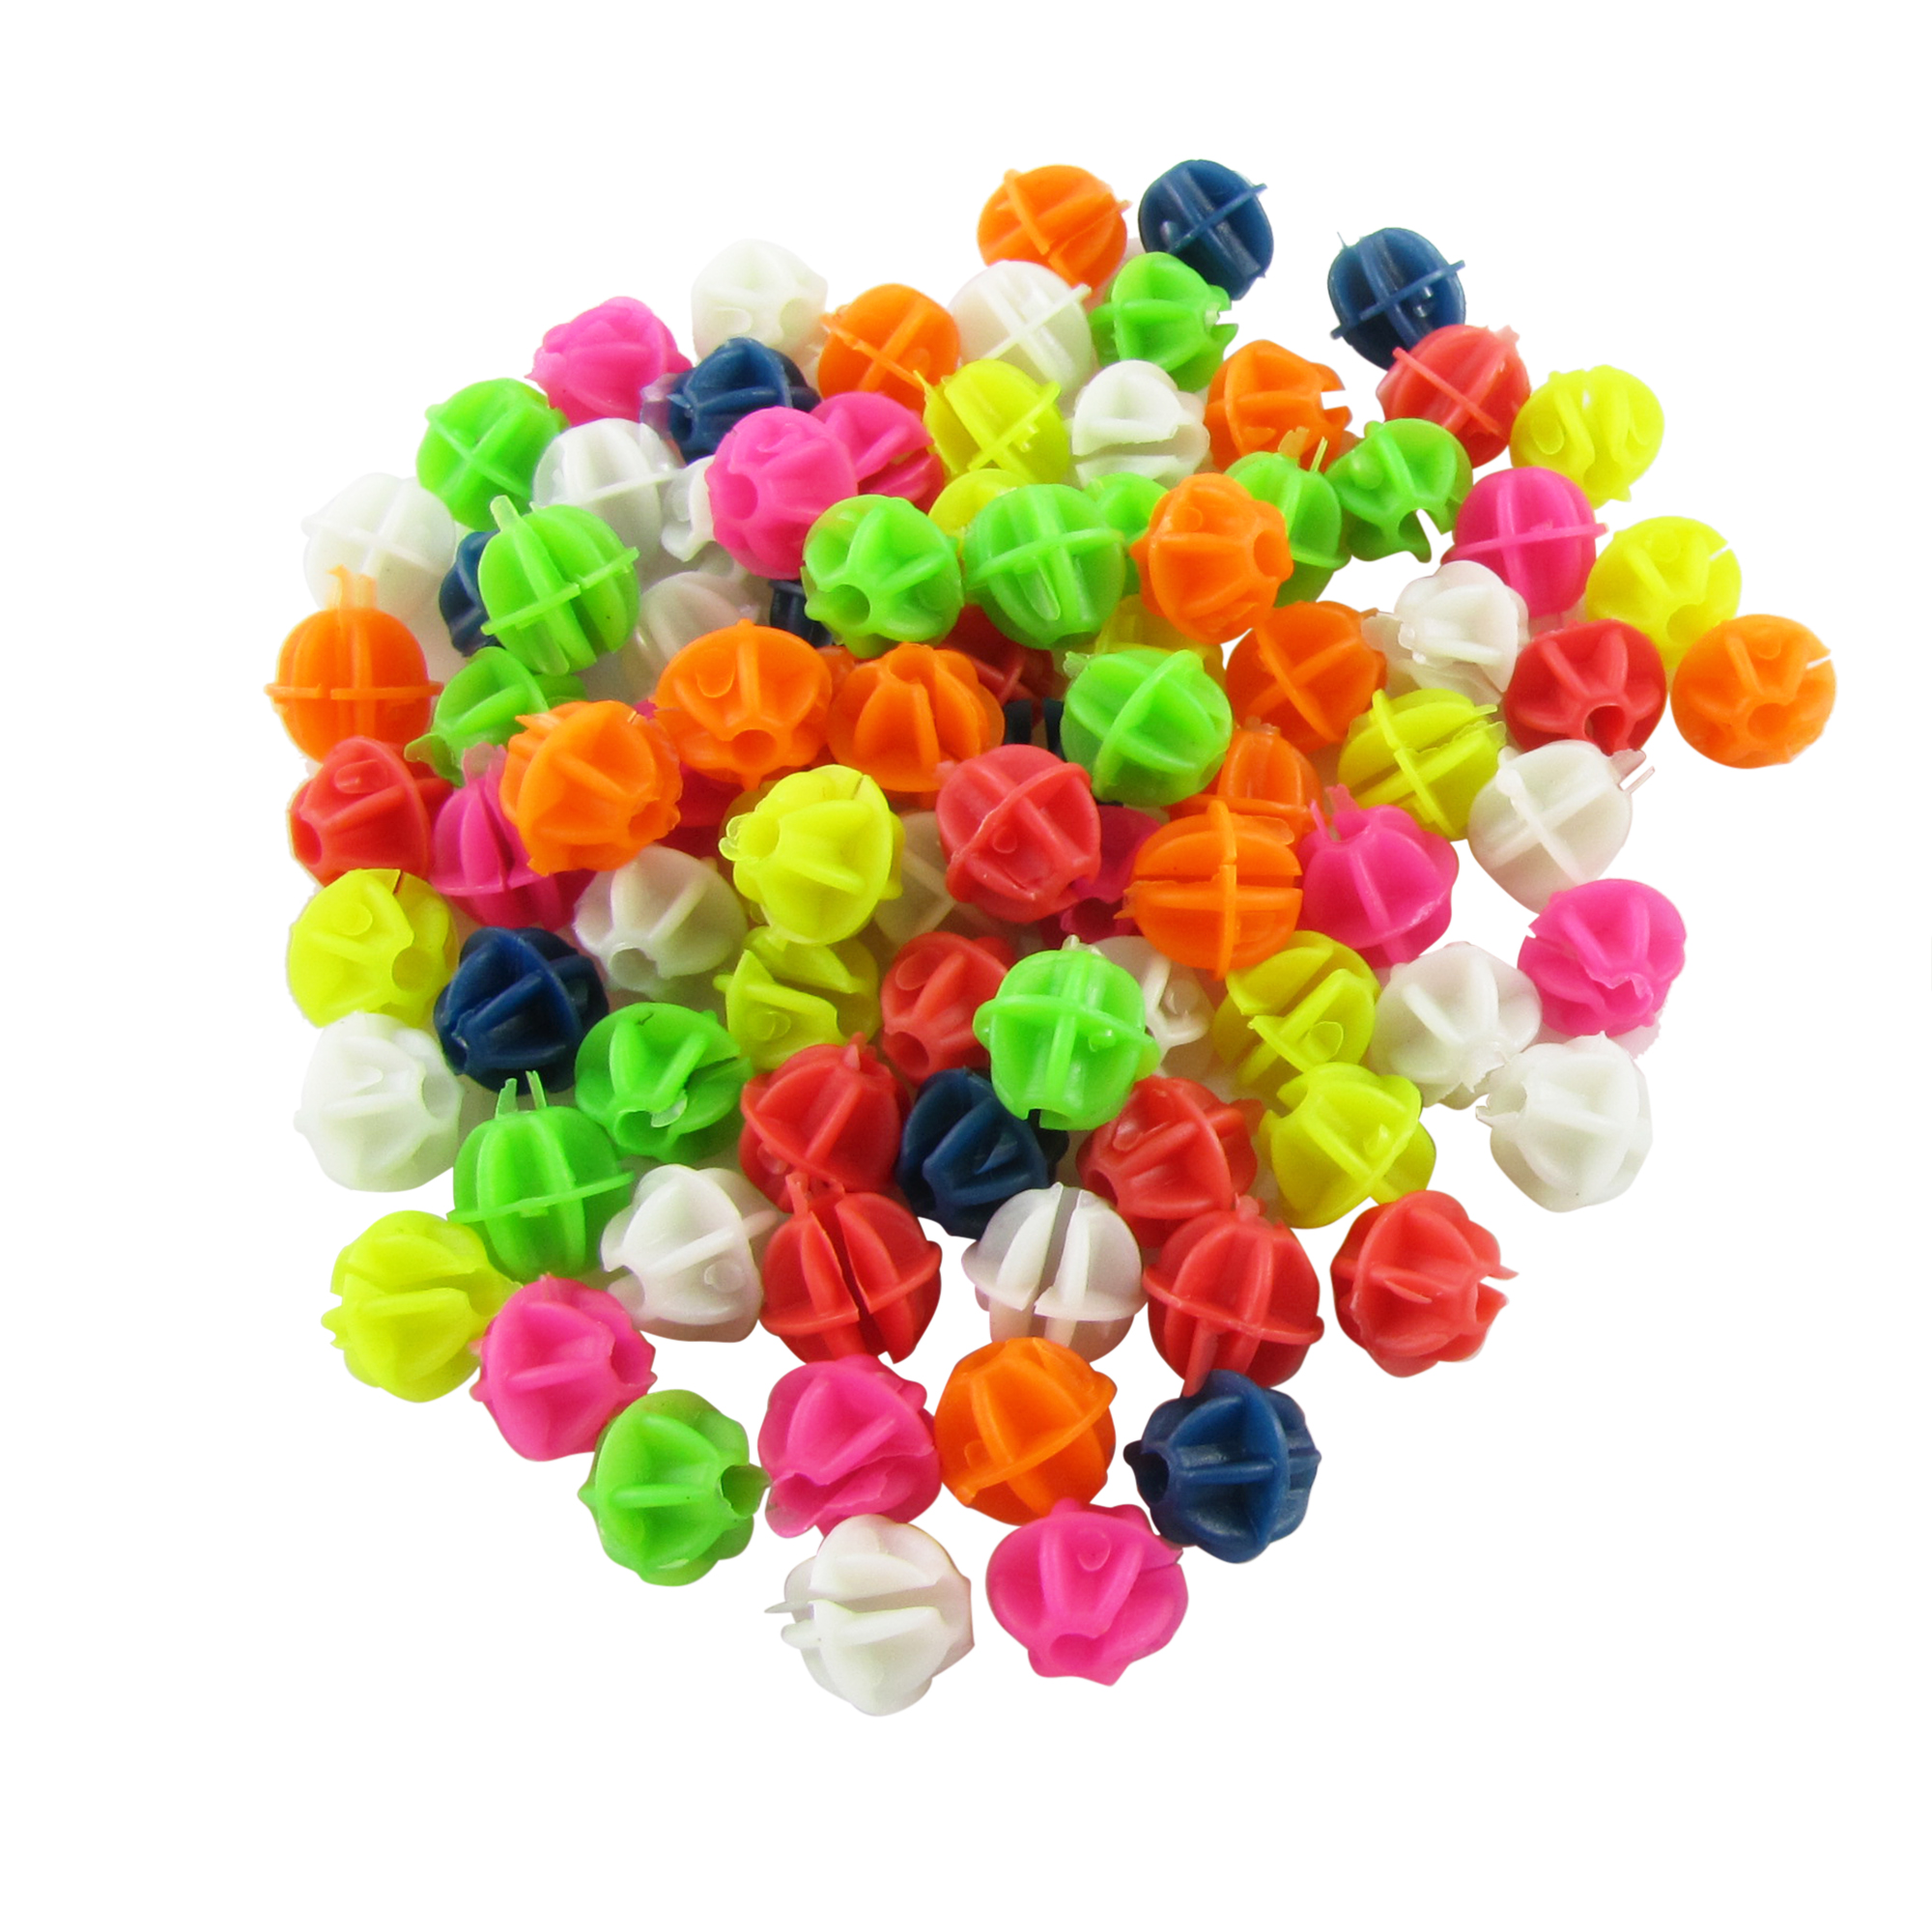 2 Bags Colorful Plastic Clip Spoke Bicycle Beads Decor